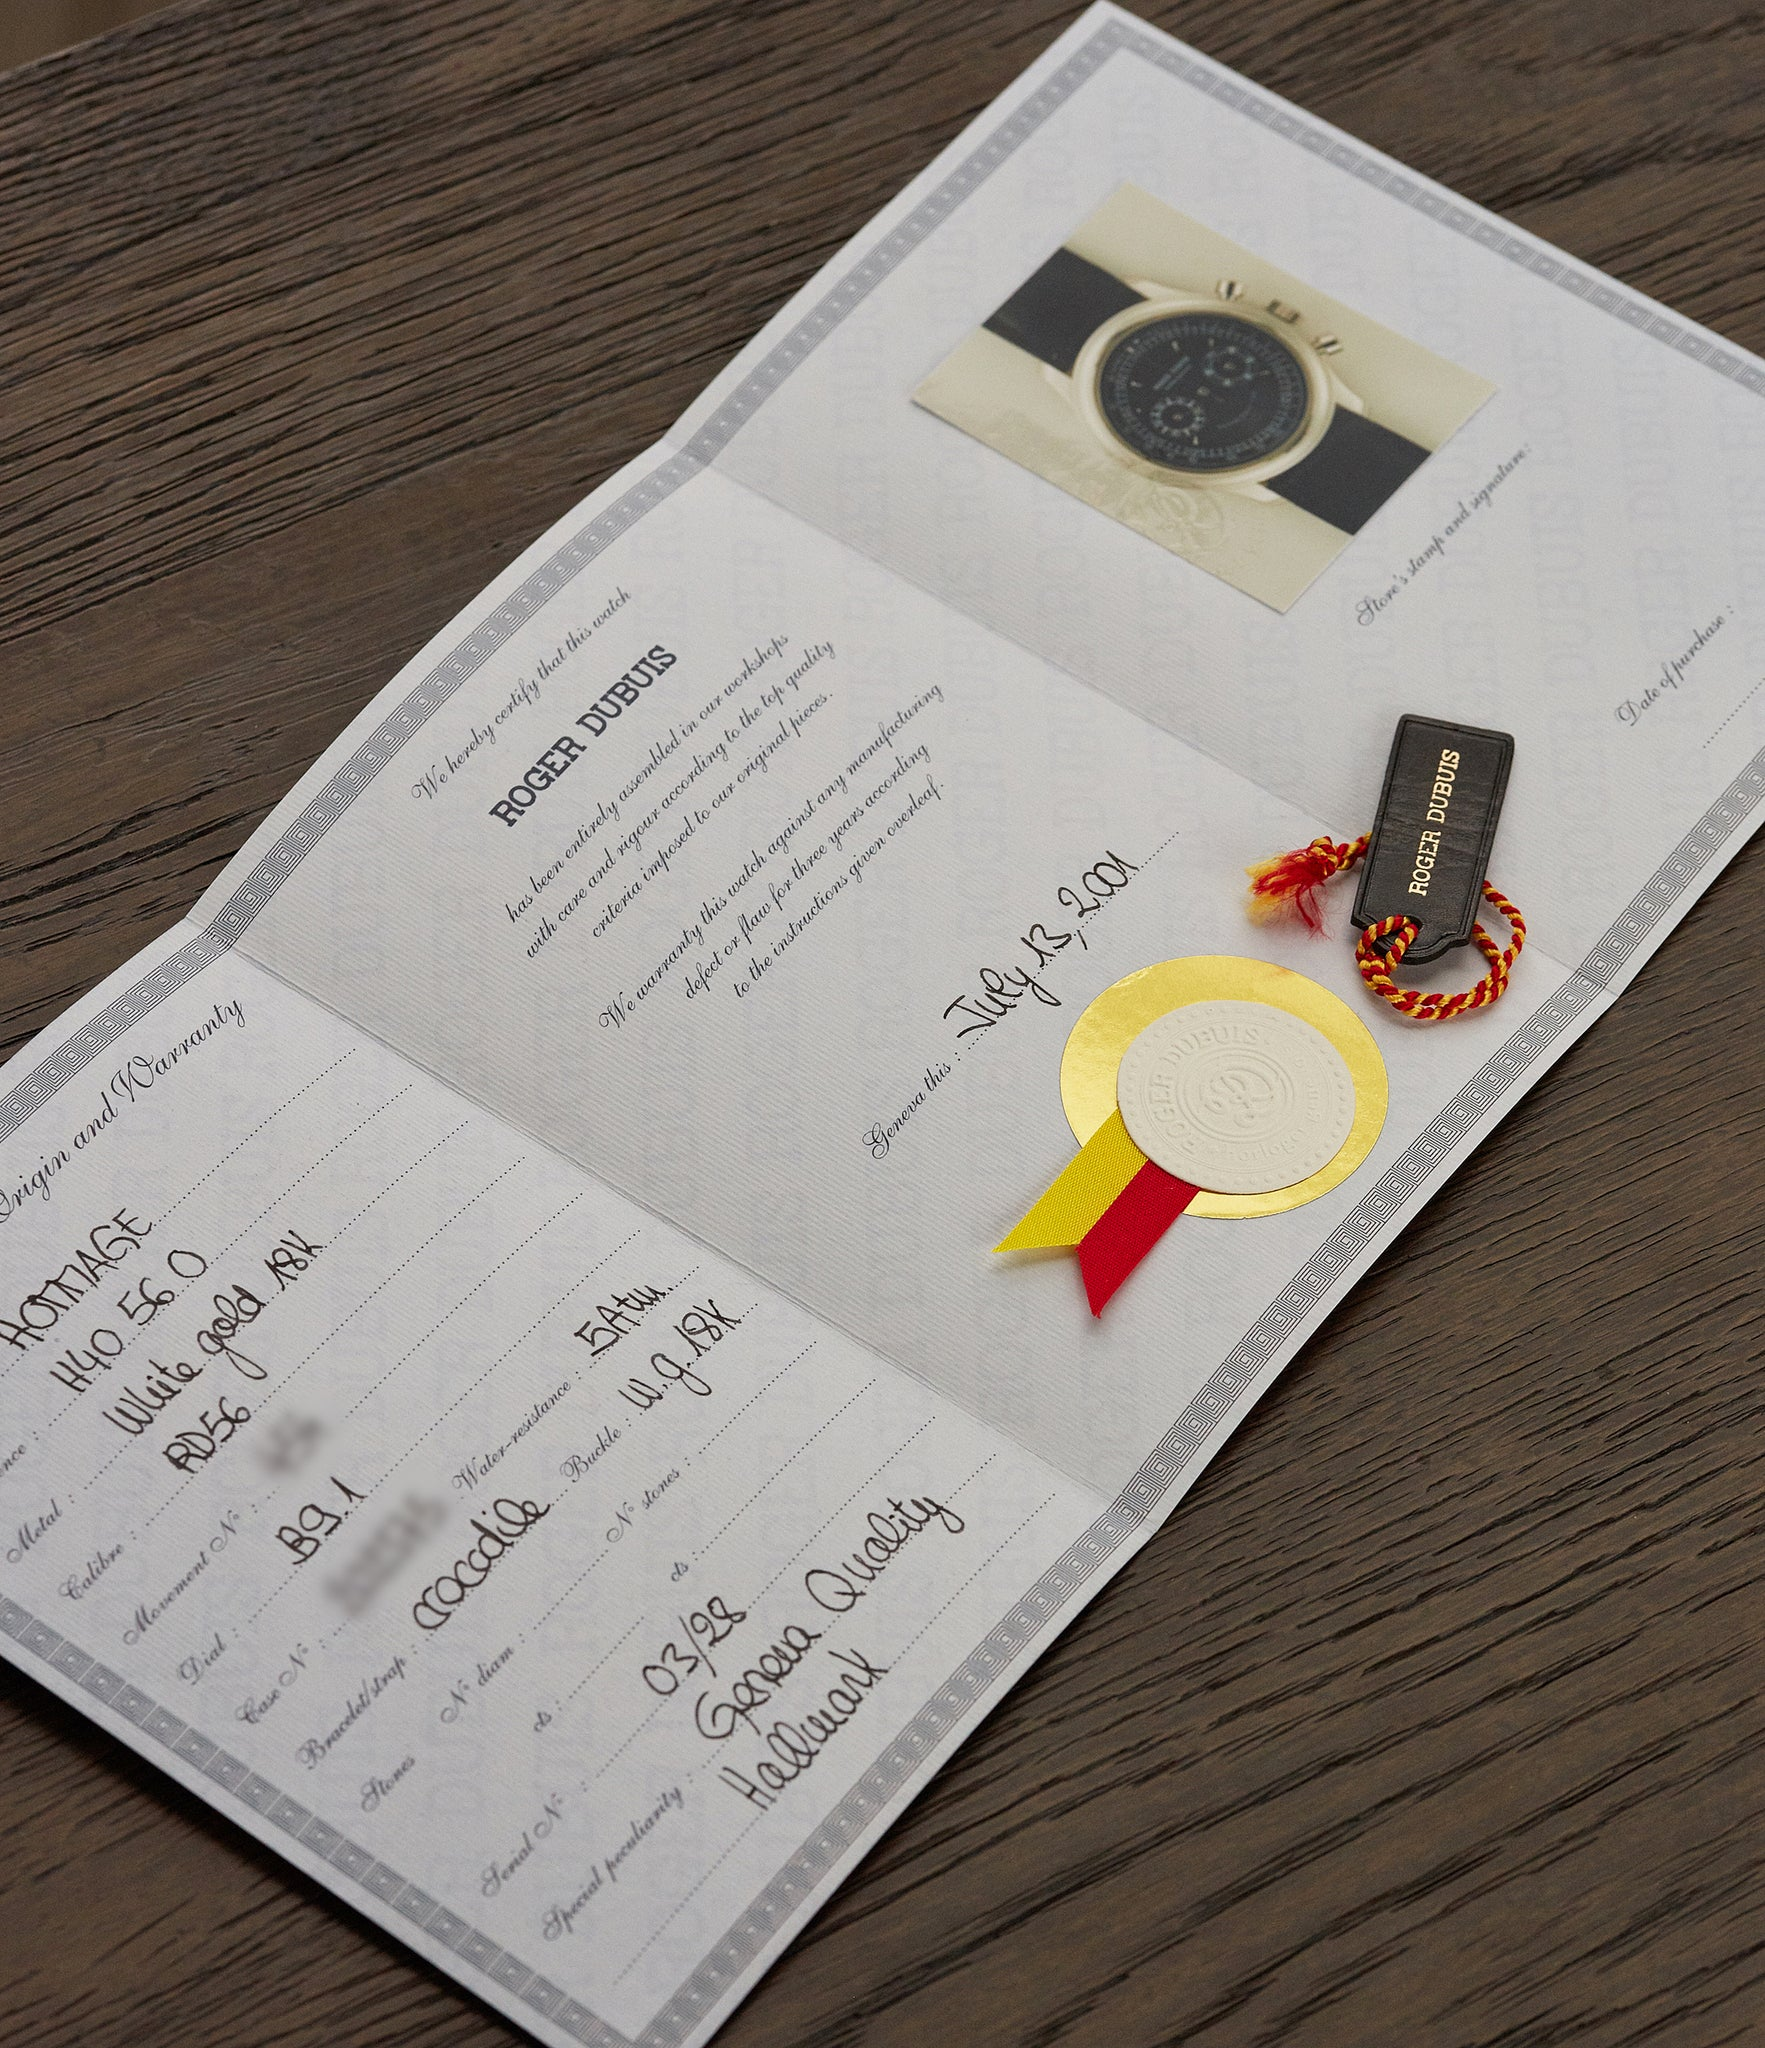 Roger Dubuis certificate of origin from 2001 at A Collected Man London